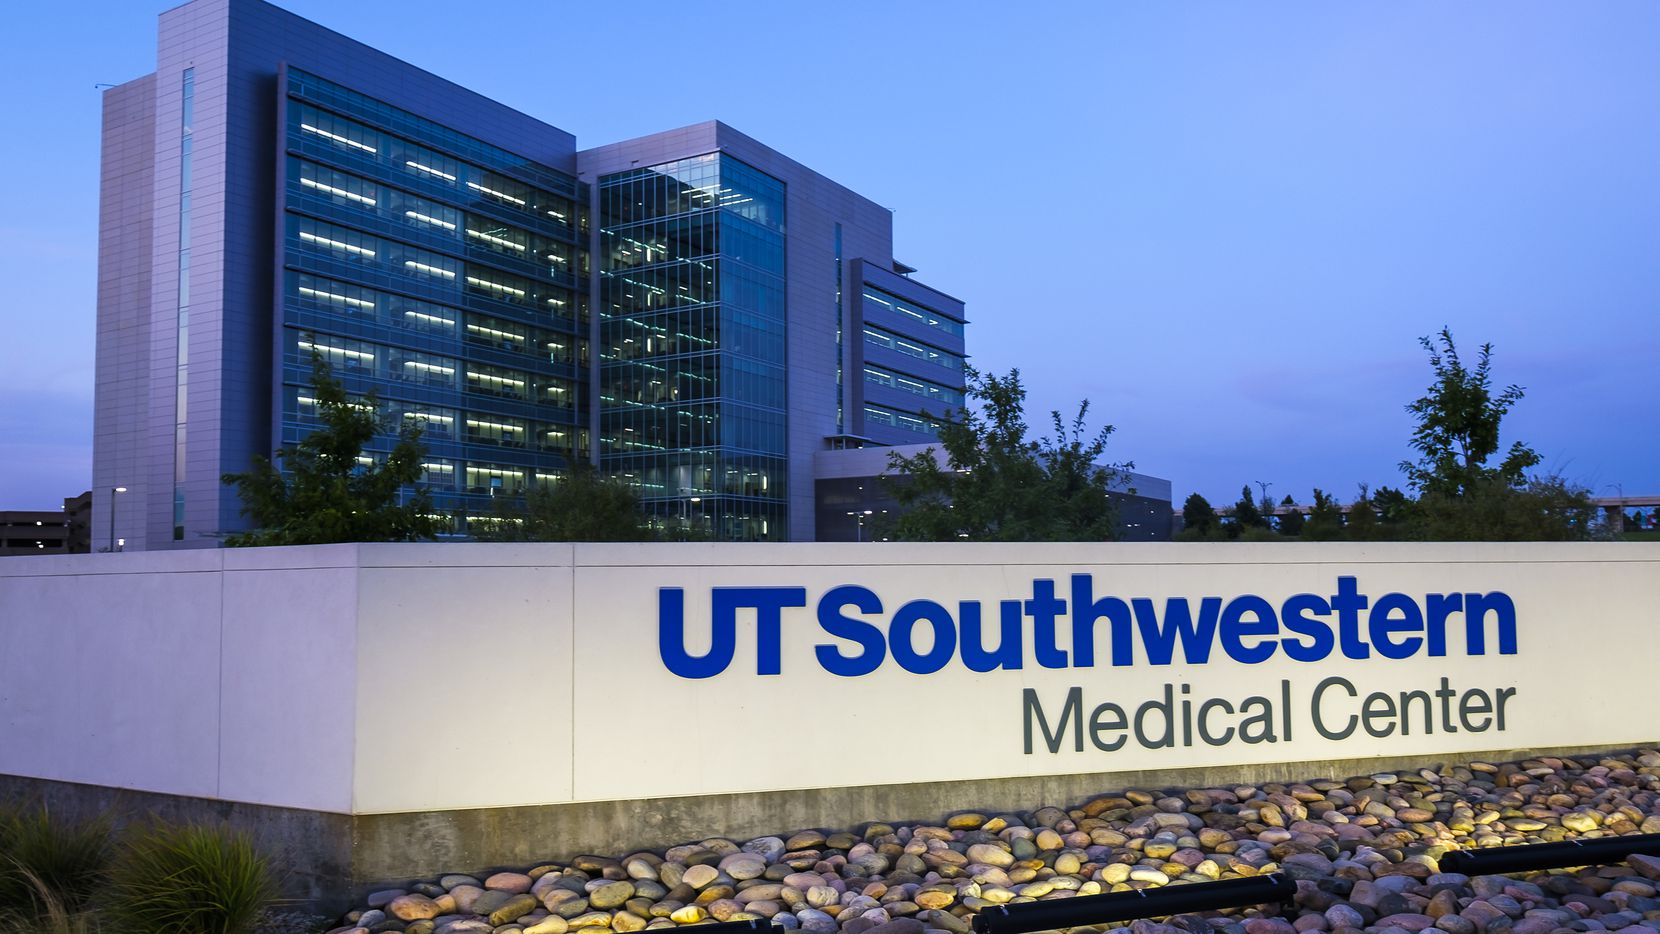 UT Southwestern Medical Center campus.